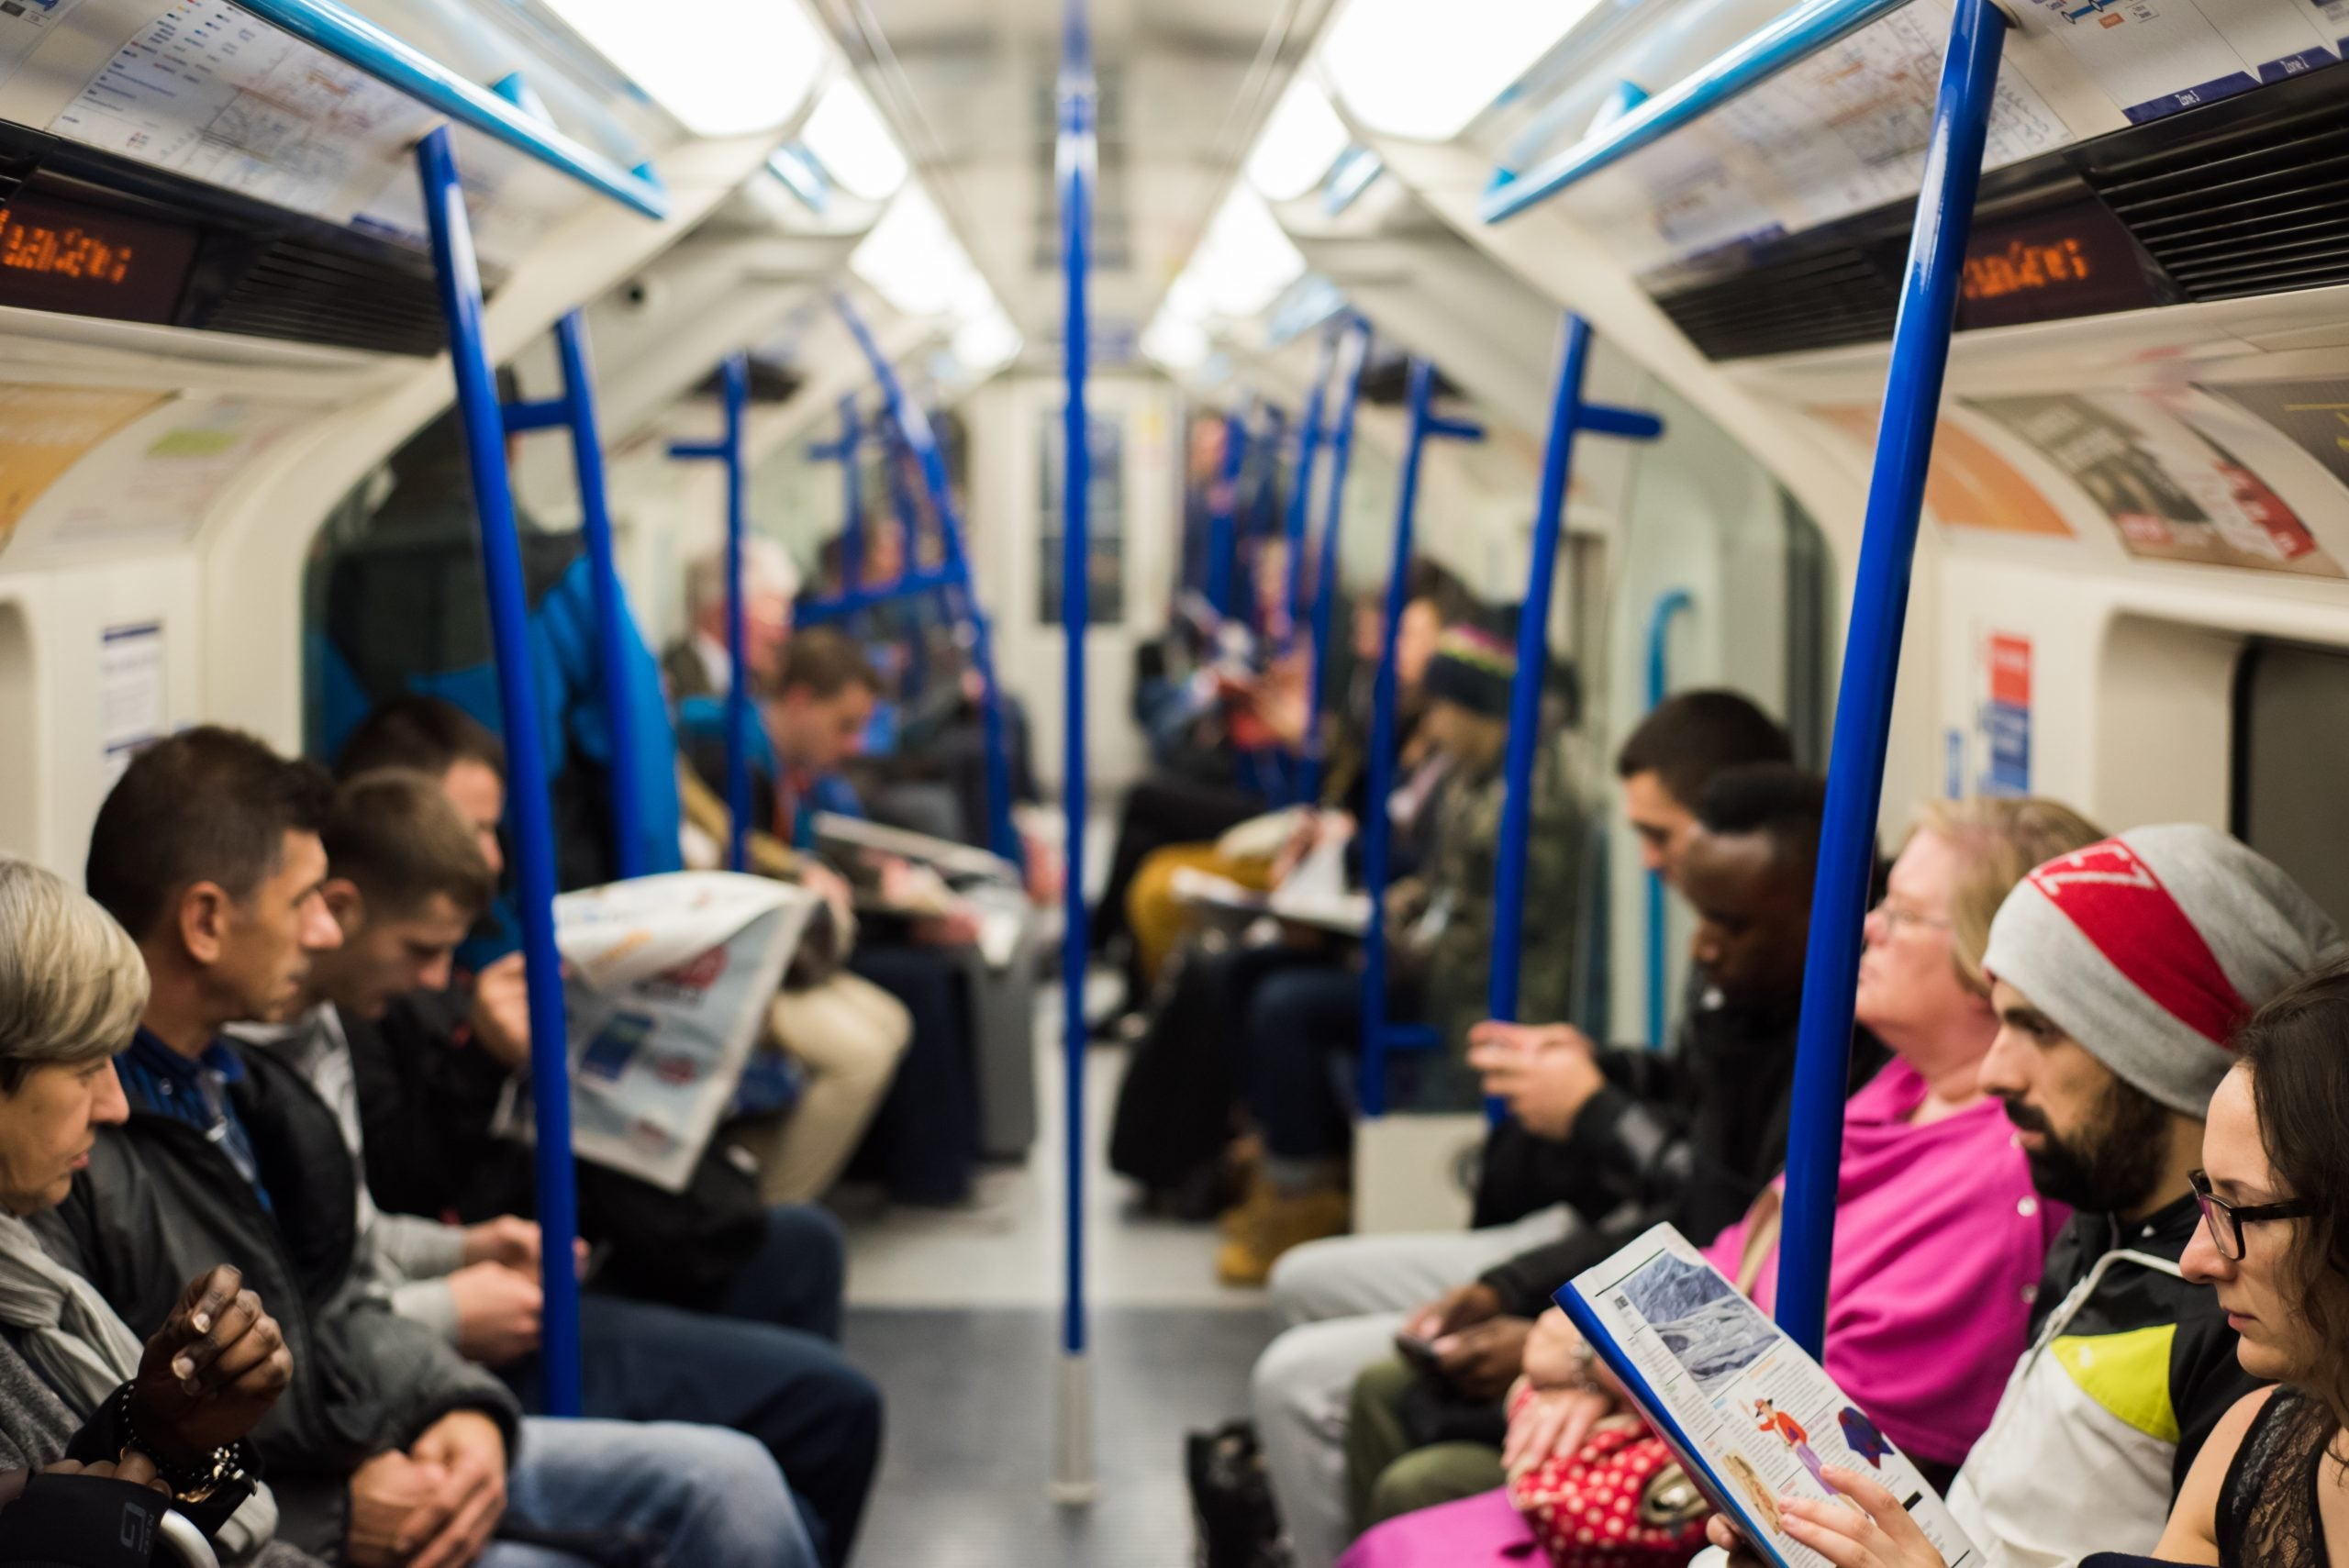 If you want to meet beautiful women, carry a theatre programme around on the Tube